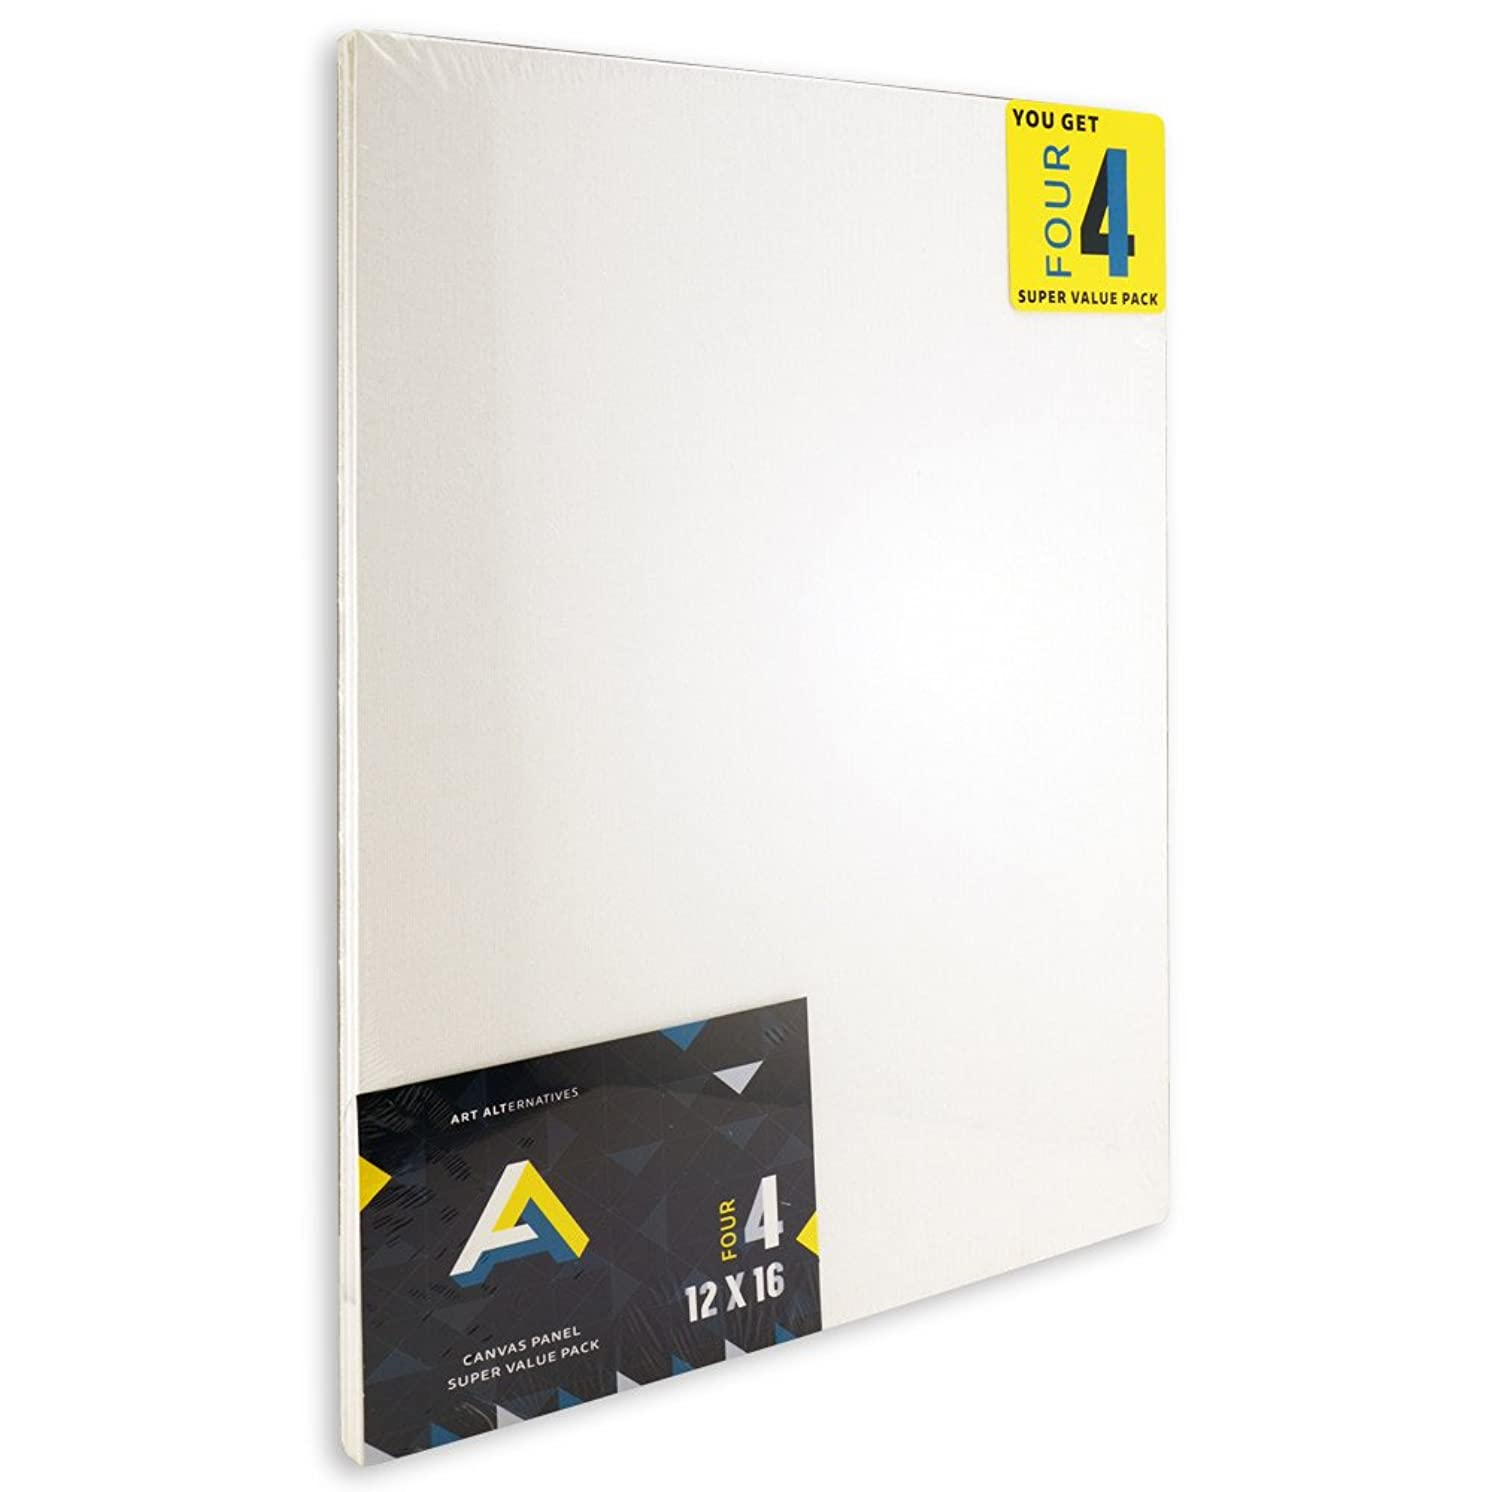 Aa Super Value Canvas Panel 12X16 Pack of 4